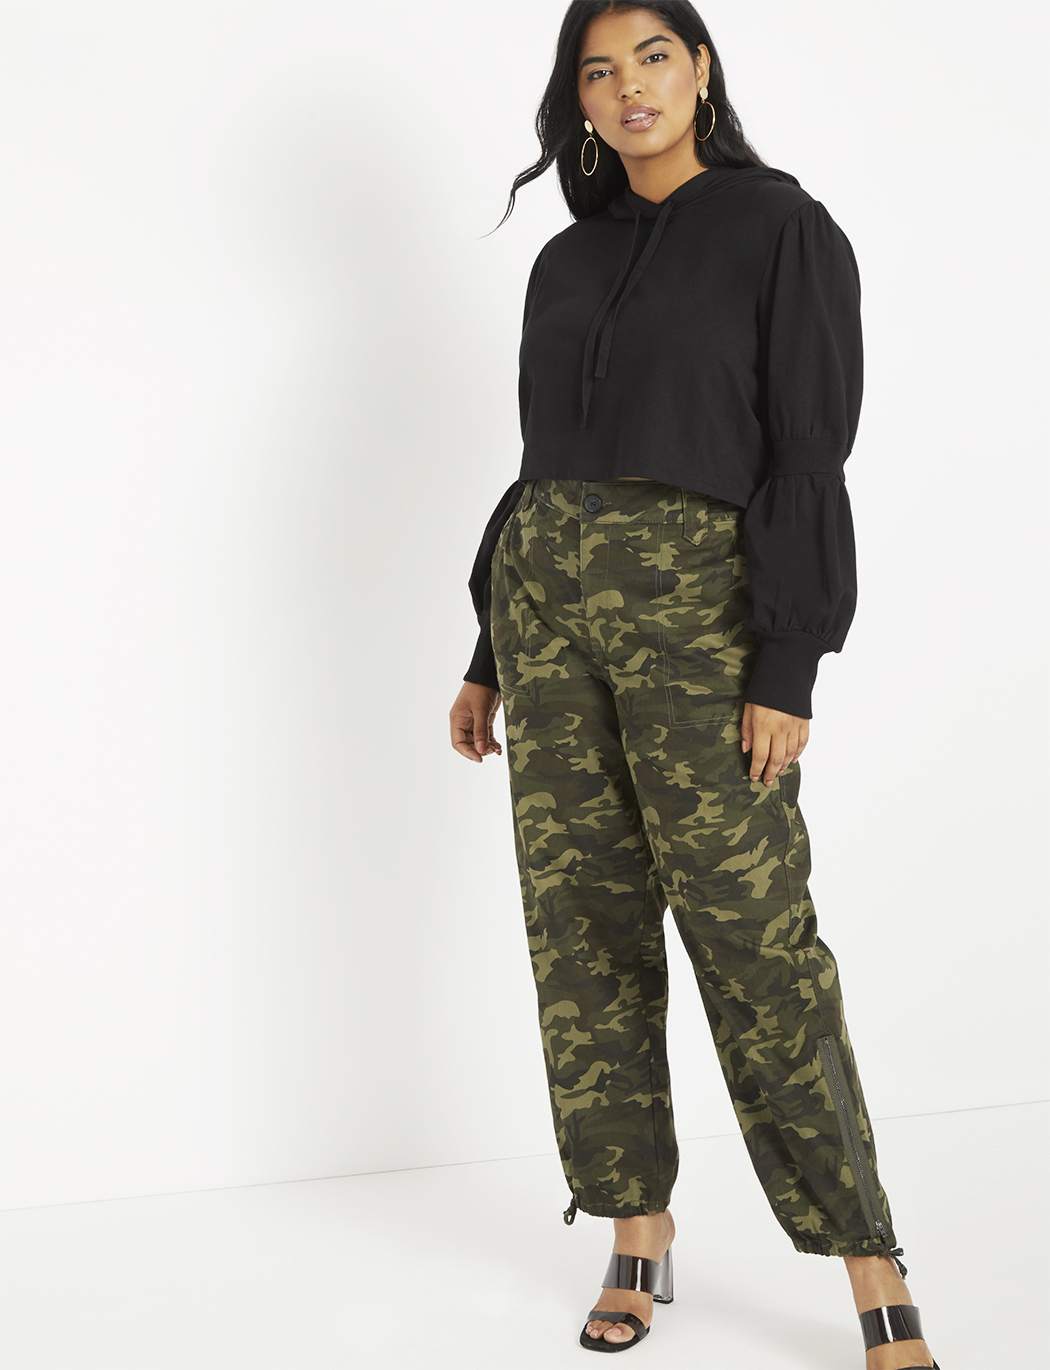 latest sale special buy newest style of Camouflage Cargo Pant | Women's Plus Size Pants | ELOQUII